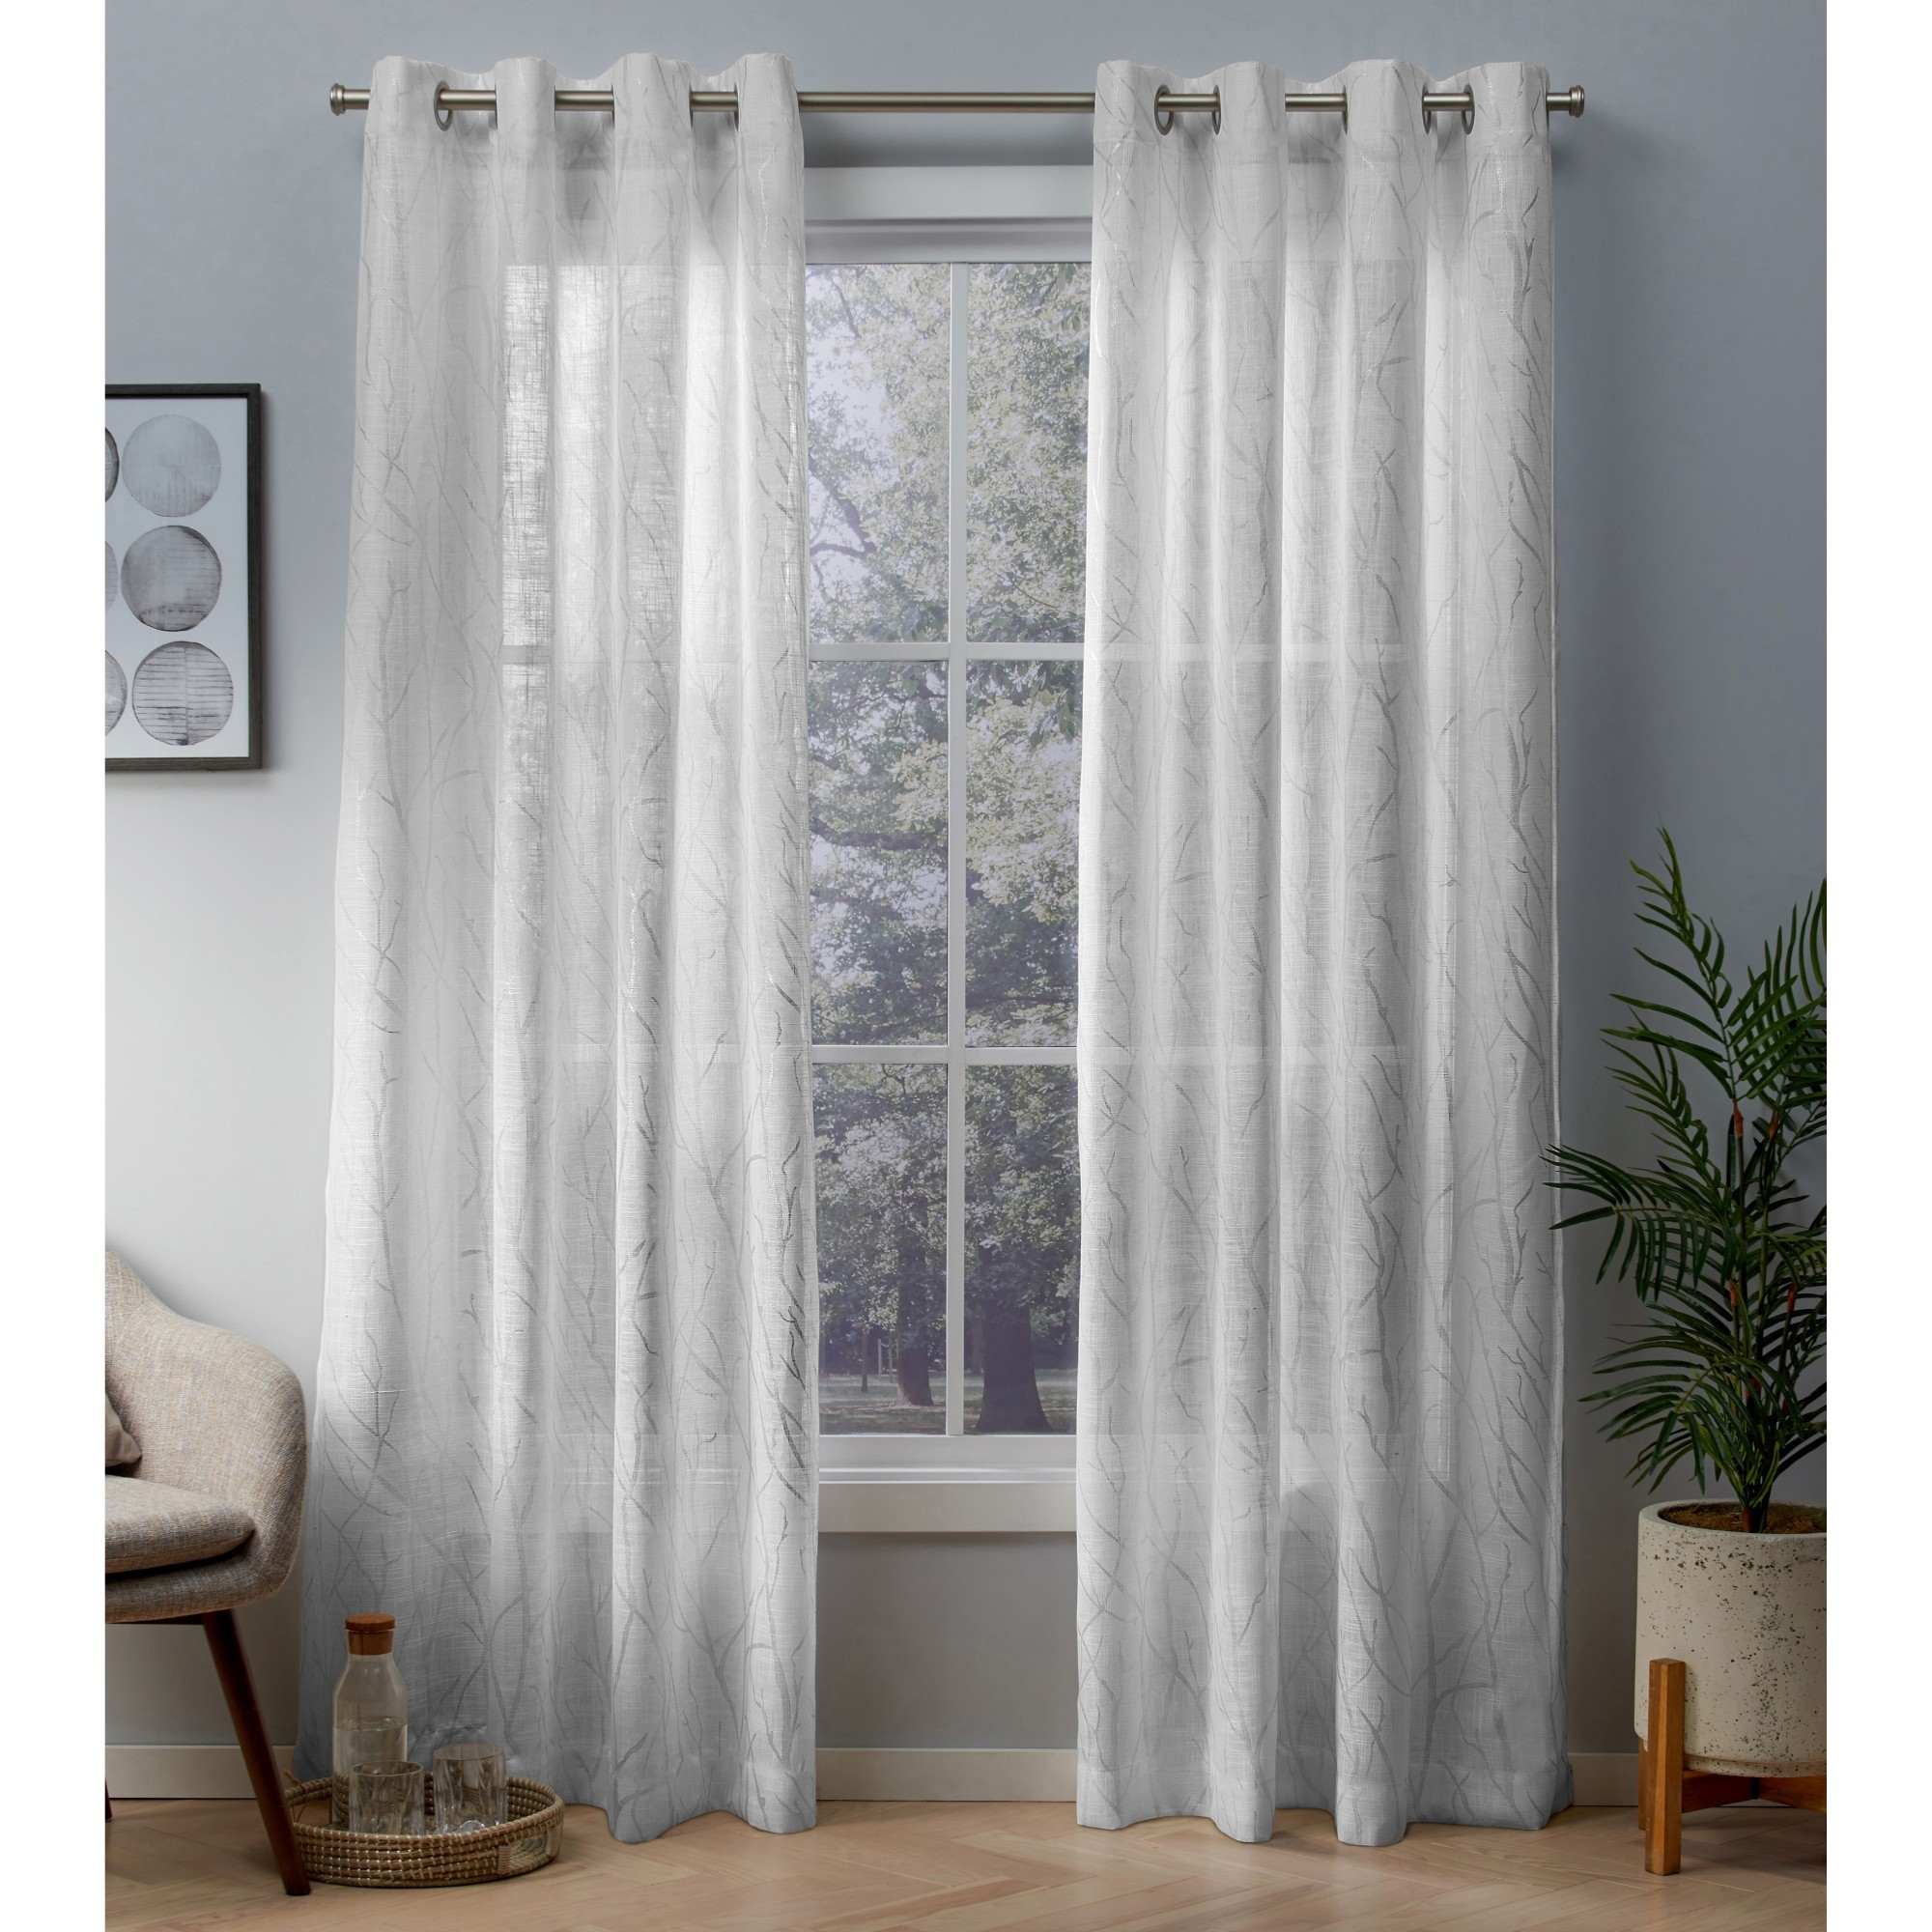 Exclusive Home Woodland Printed Metallic Branch Sheer Textured Linen Window Curtain Panel Pair with Grommet Top